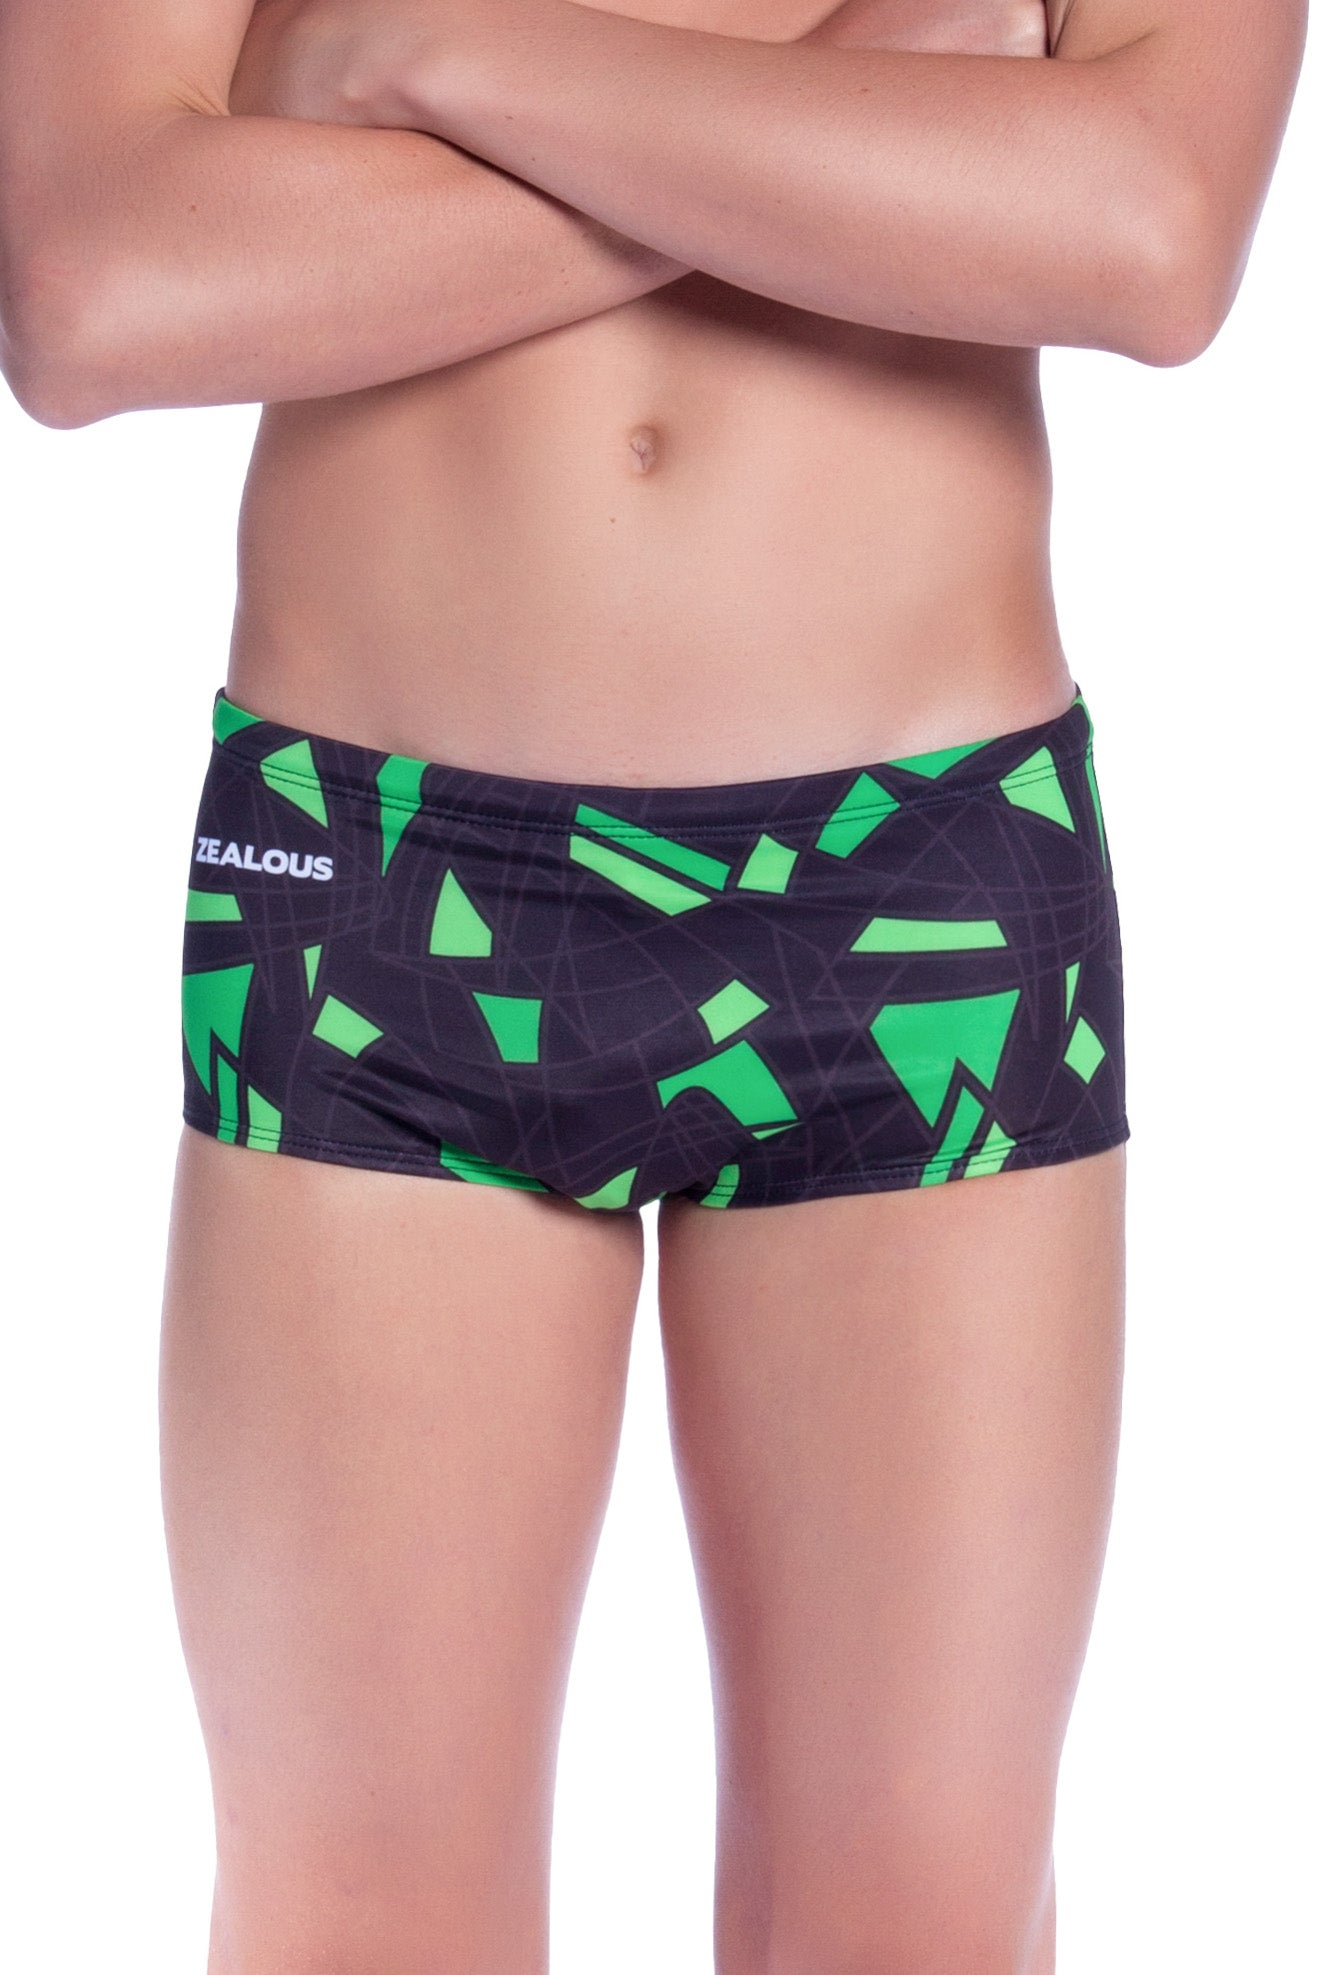 Neon Clash Boys Trunks - Shop Zealous Training Swimwear